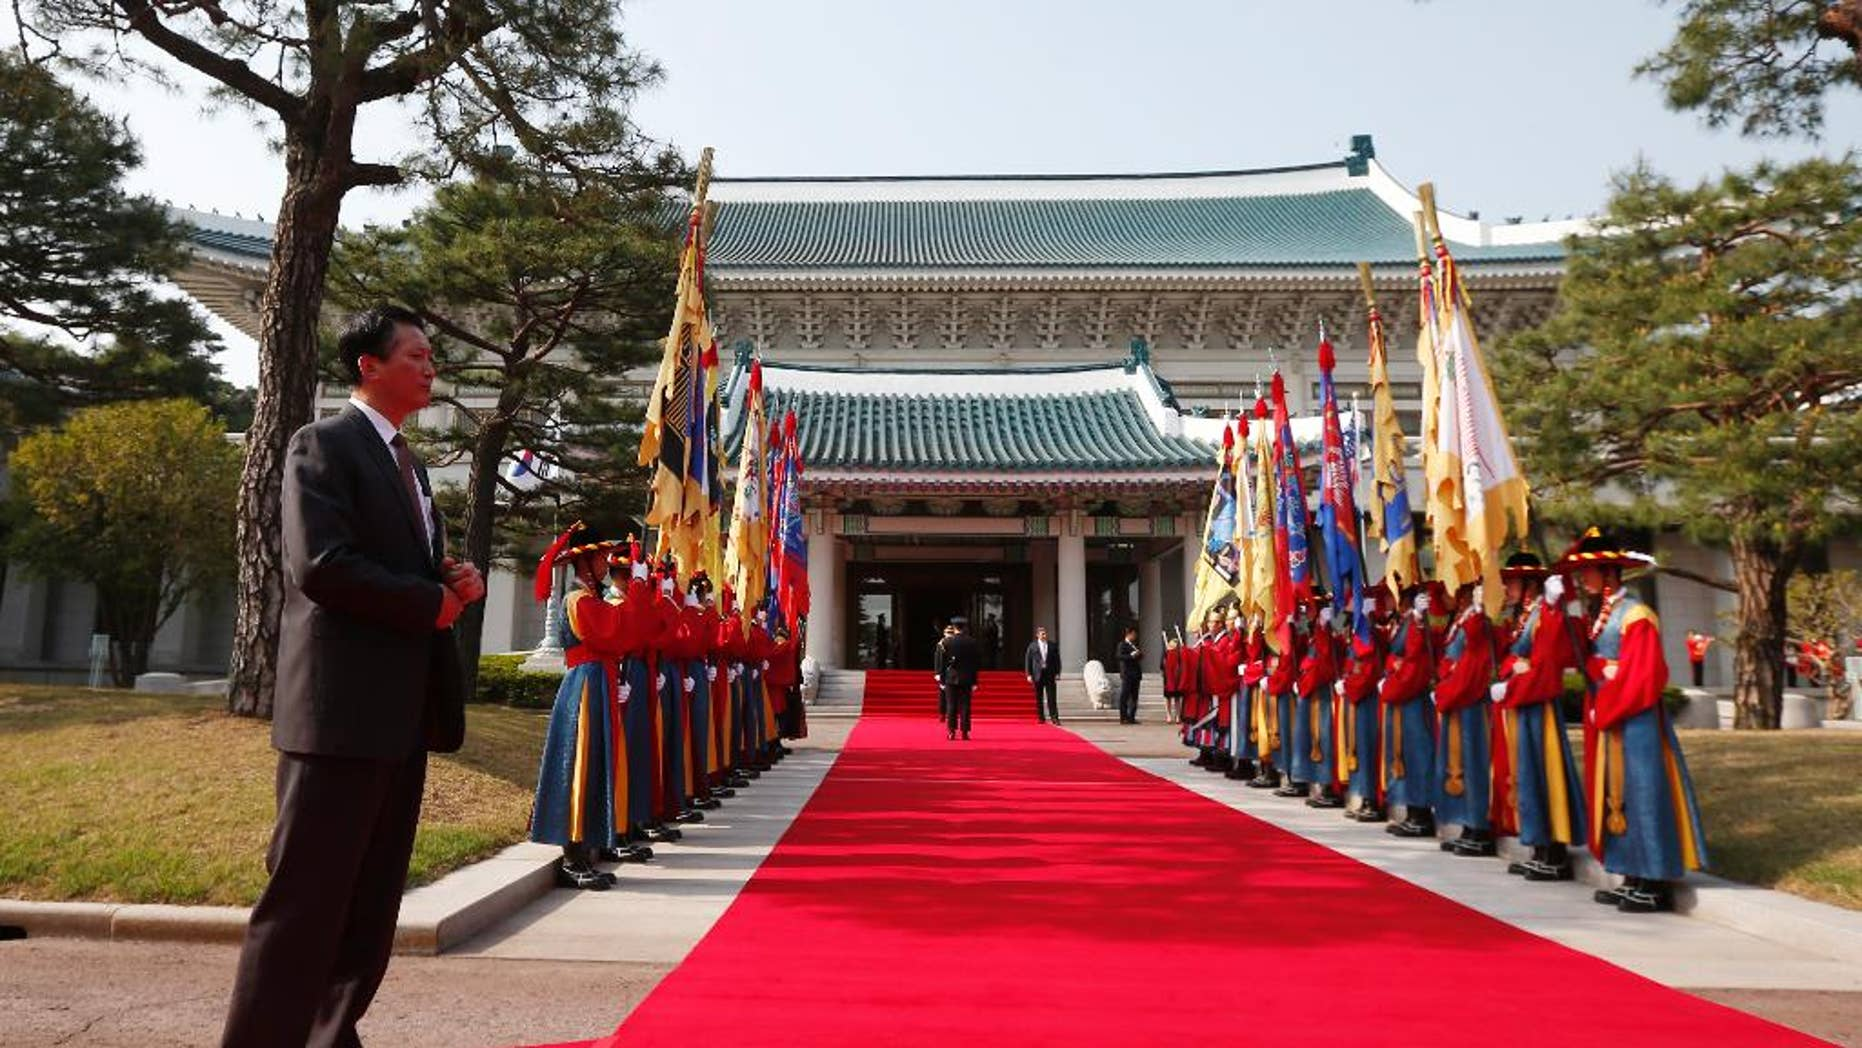 In this April 25, 2014, photo, a security official stands at the Blue House in Seoul, South Korea, before an official welcoming ceremony. South Korea said Wednesday, April 27, 2016, that North Korea has built a half-size mock-up of the South's presidential palace at a firing range in what looked like preparations for a live-fire drill. (AP Photo/Charles Dharapak)